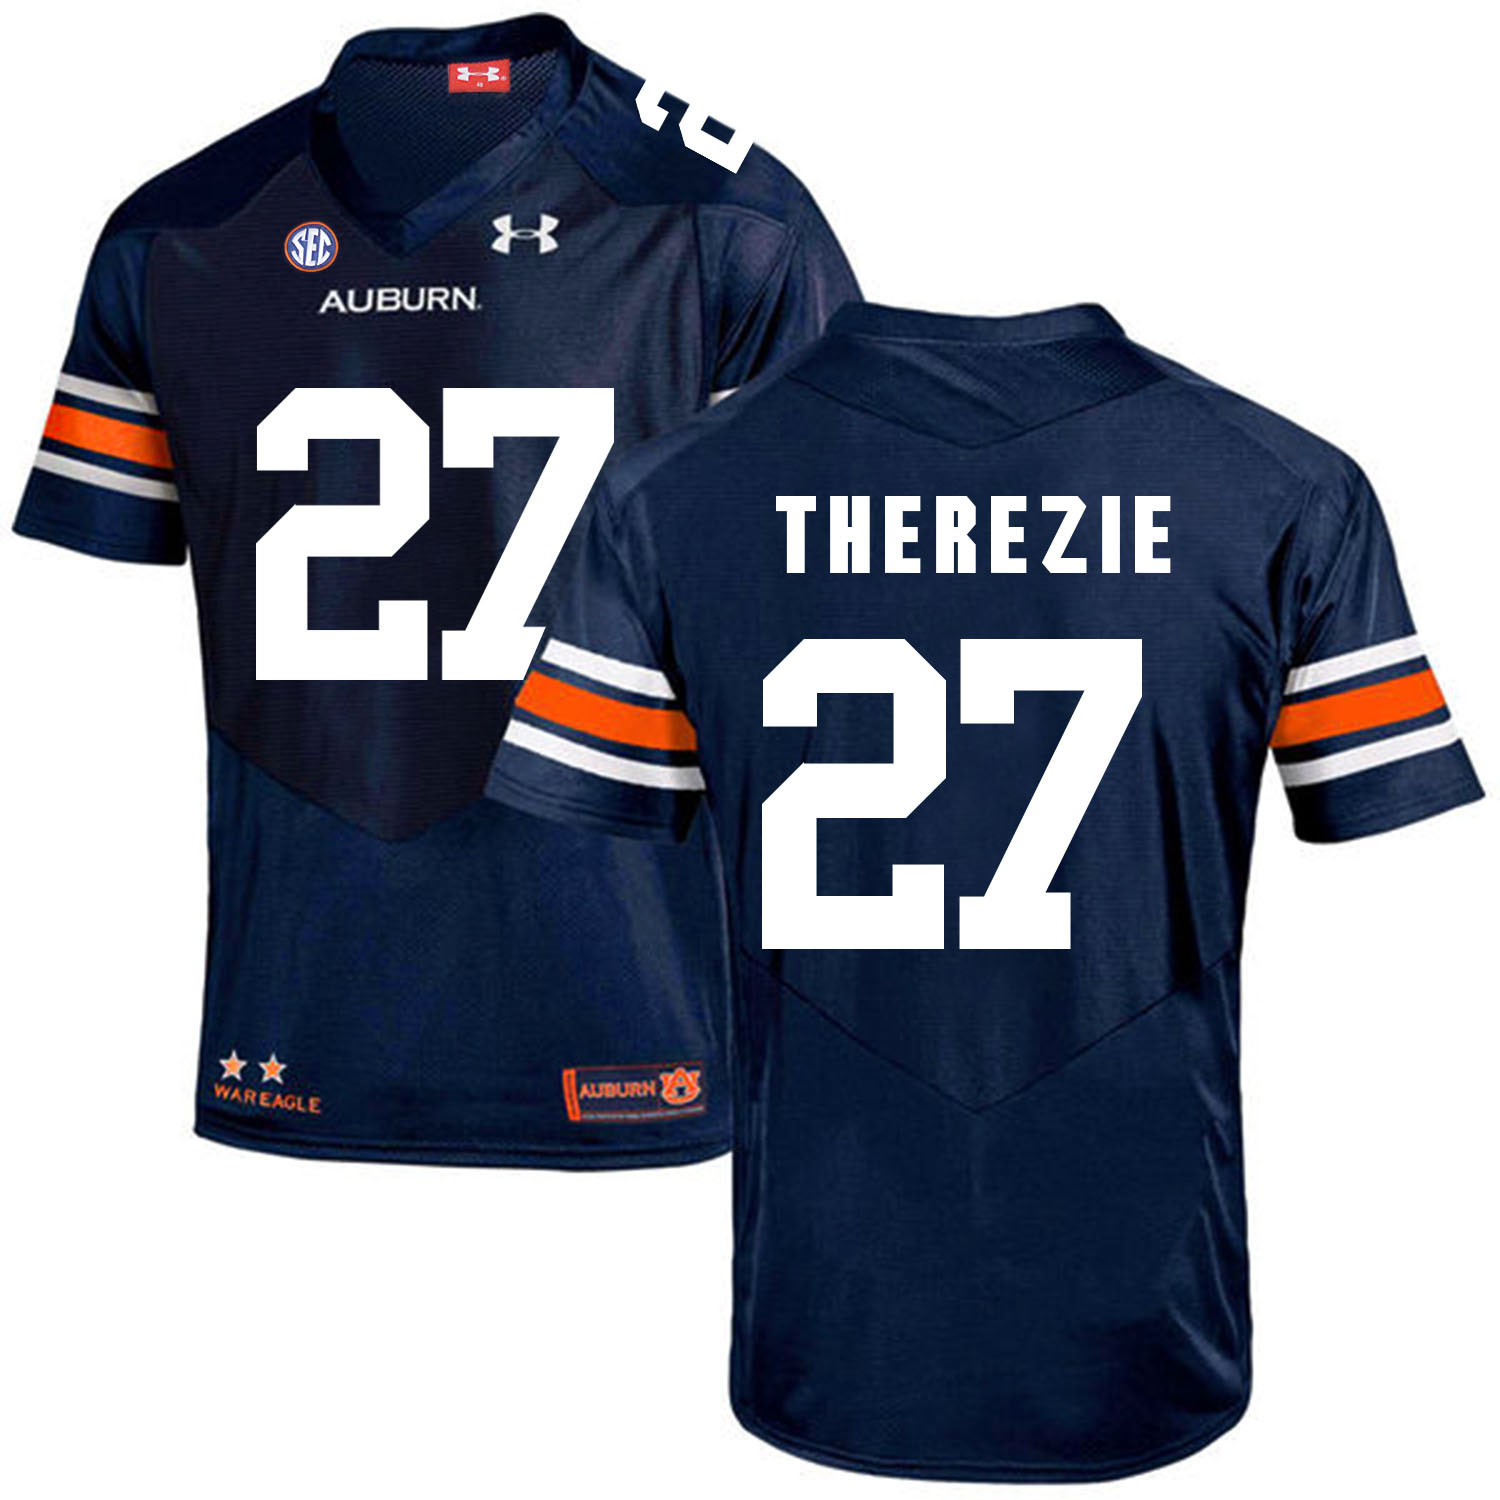 Auburn Tigers 27 Robenson Therezie Navy College Football Jersey